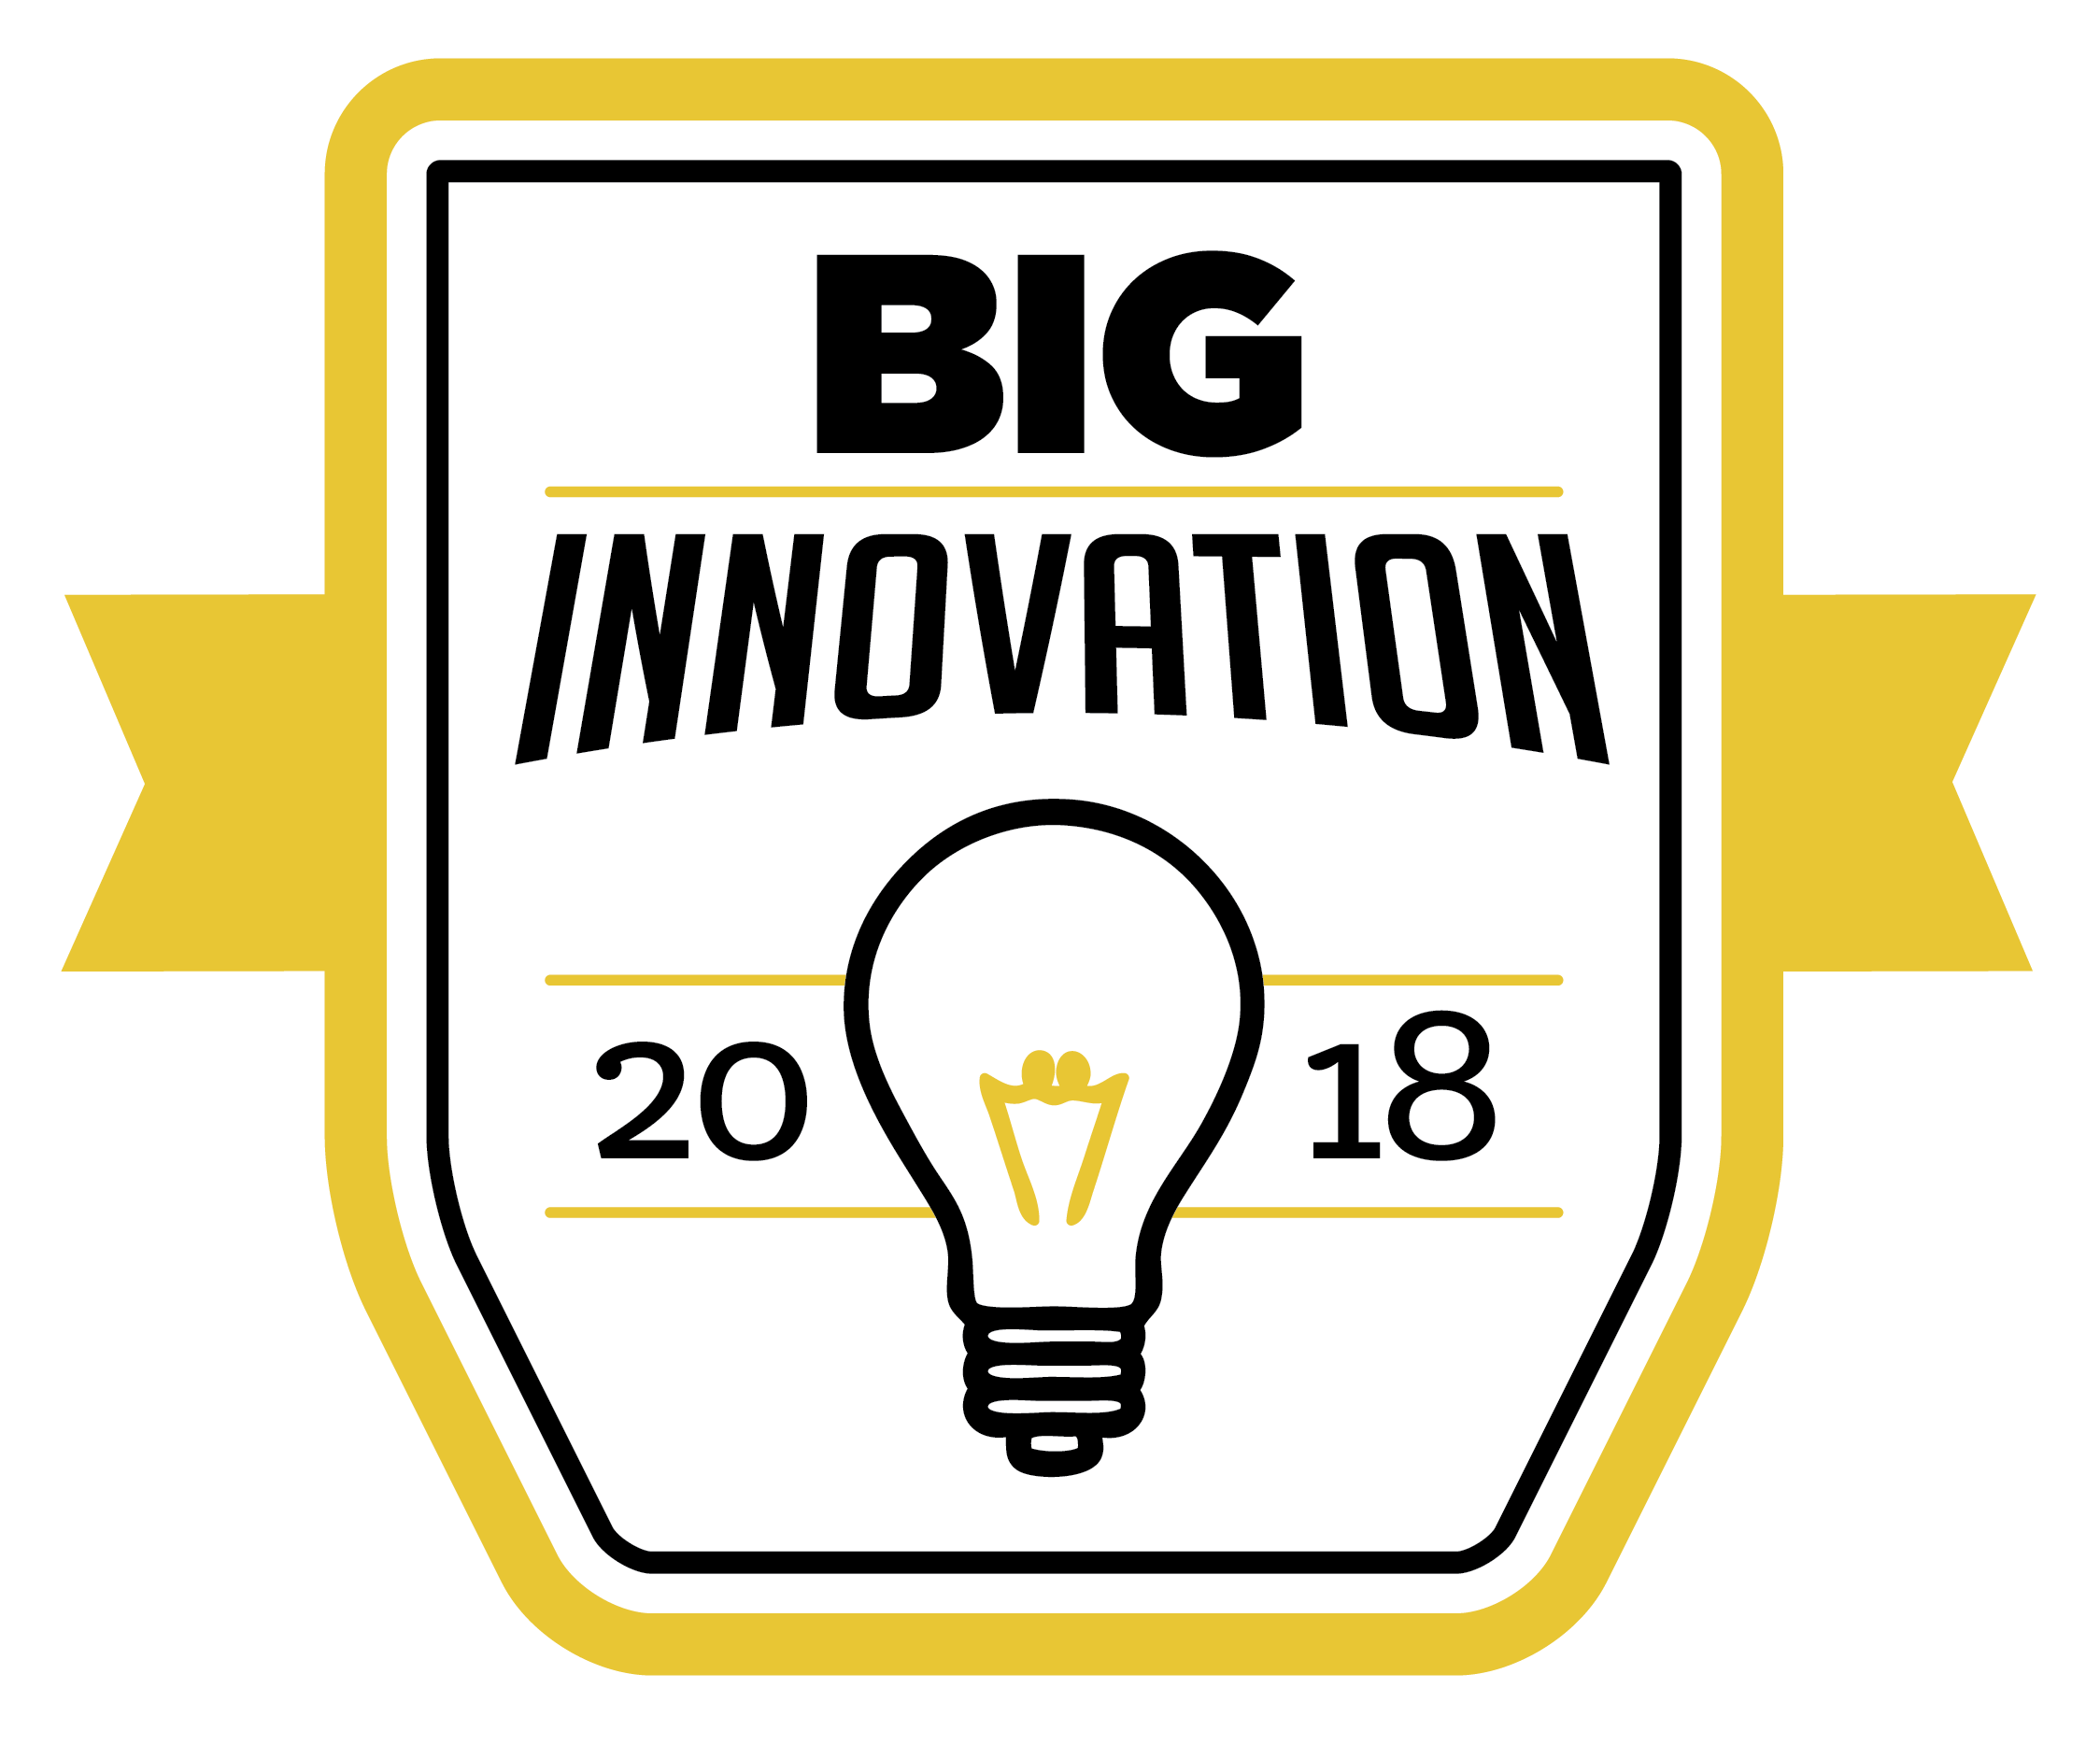 BIG Innovation Award 2018